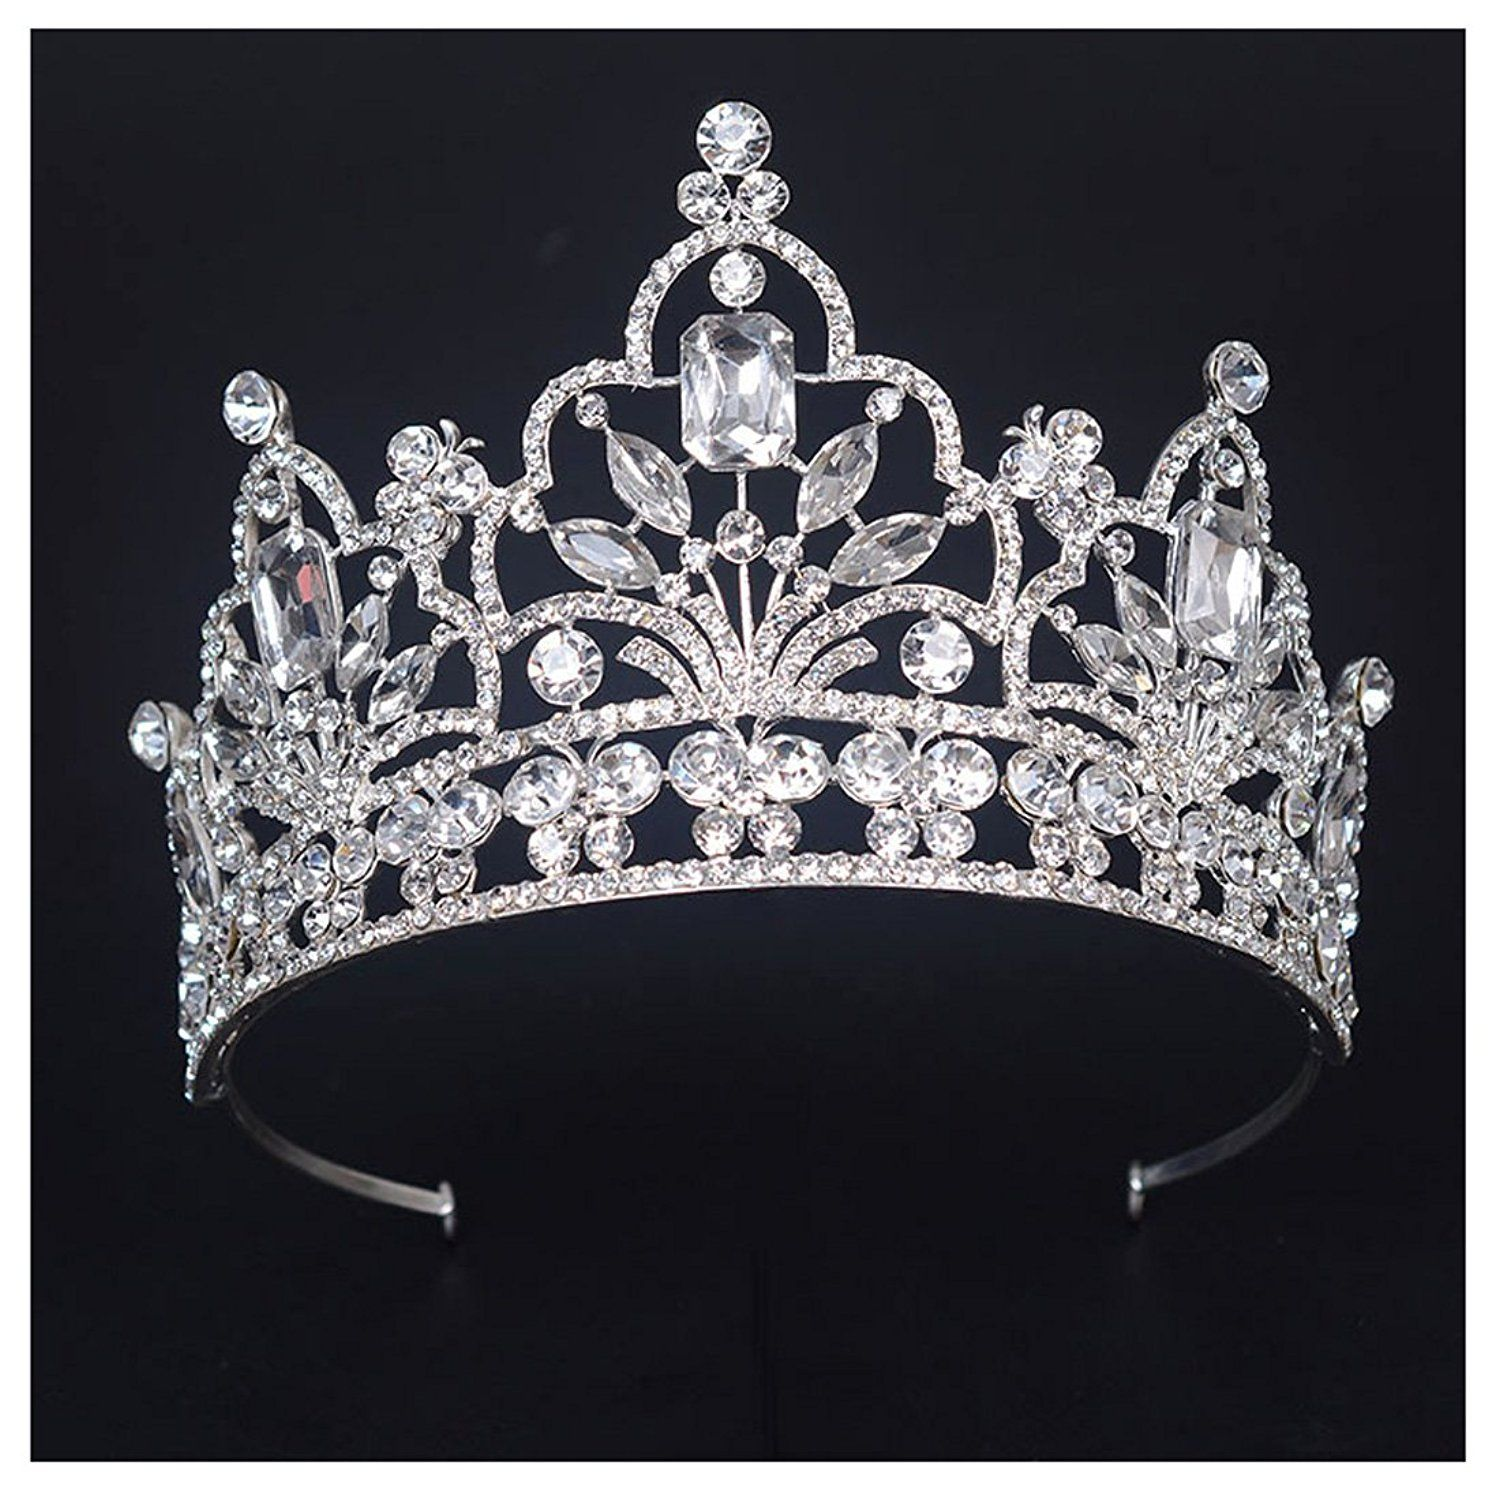 Amazon.com  FF Pageant Crown Tiara for Women 4 Inches Tall Tiaras Wedding  Hair Accessories  Jewelry 2c2e3438293c